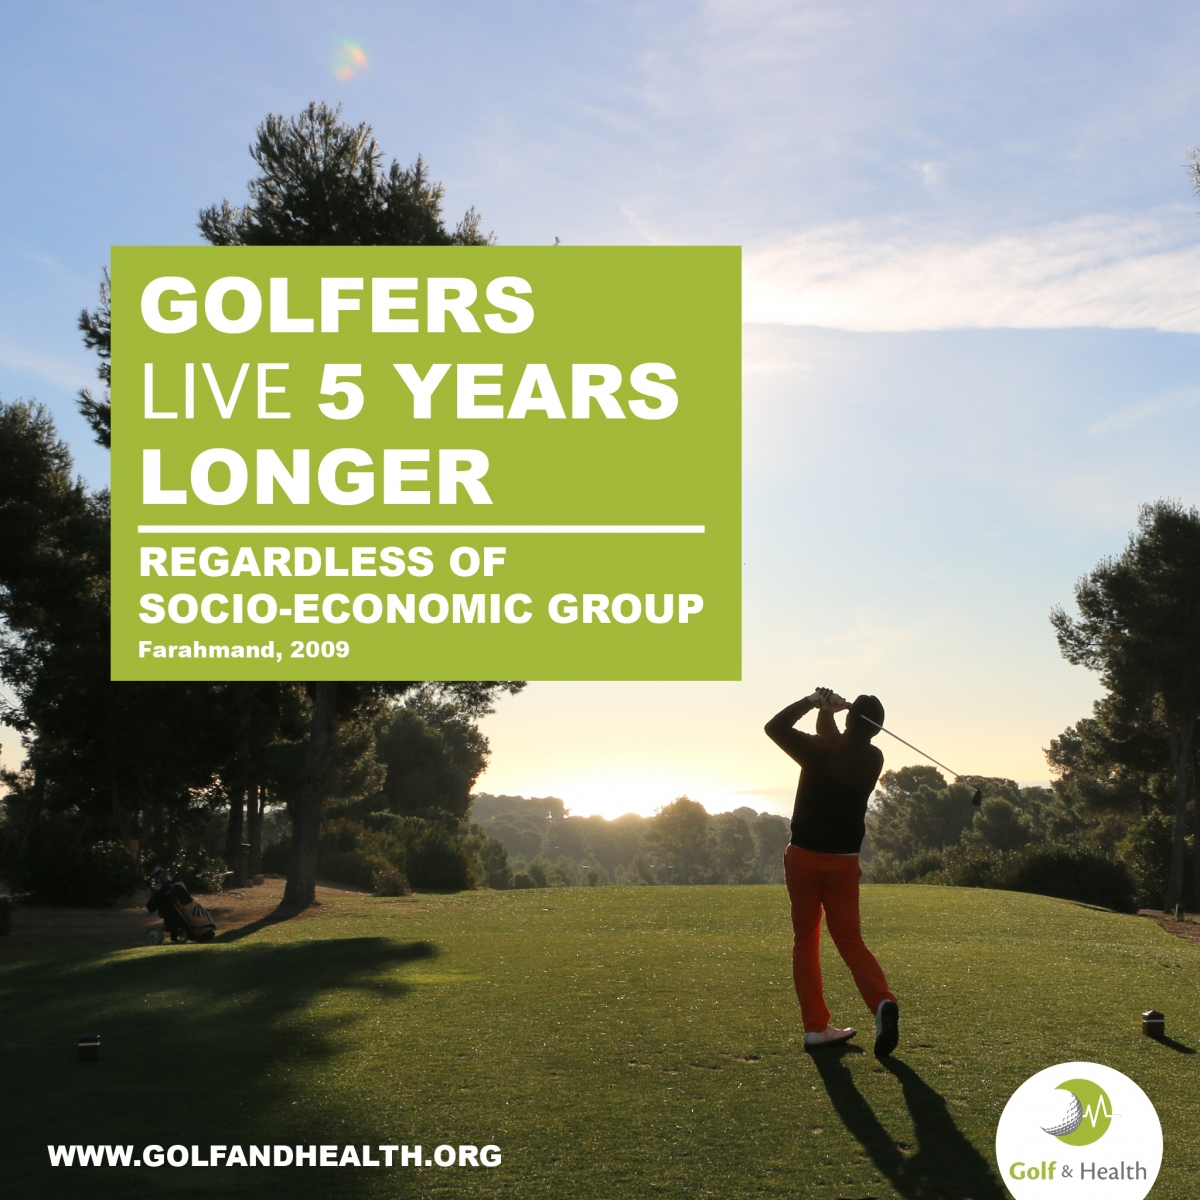 Golf-and-Health-Fact_5-Years-Longer_02